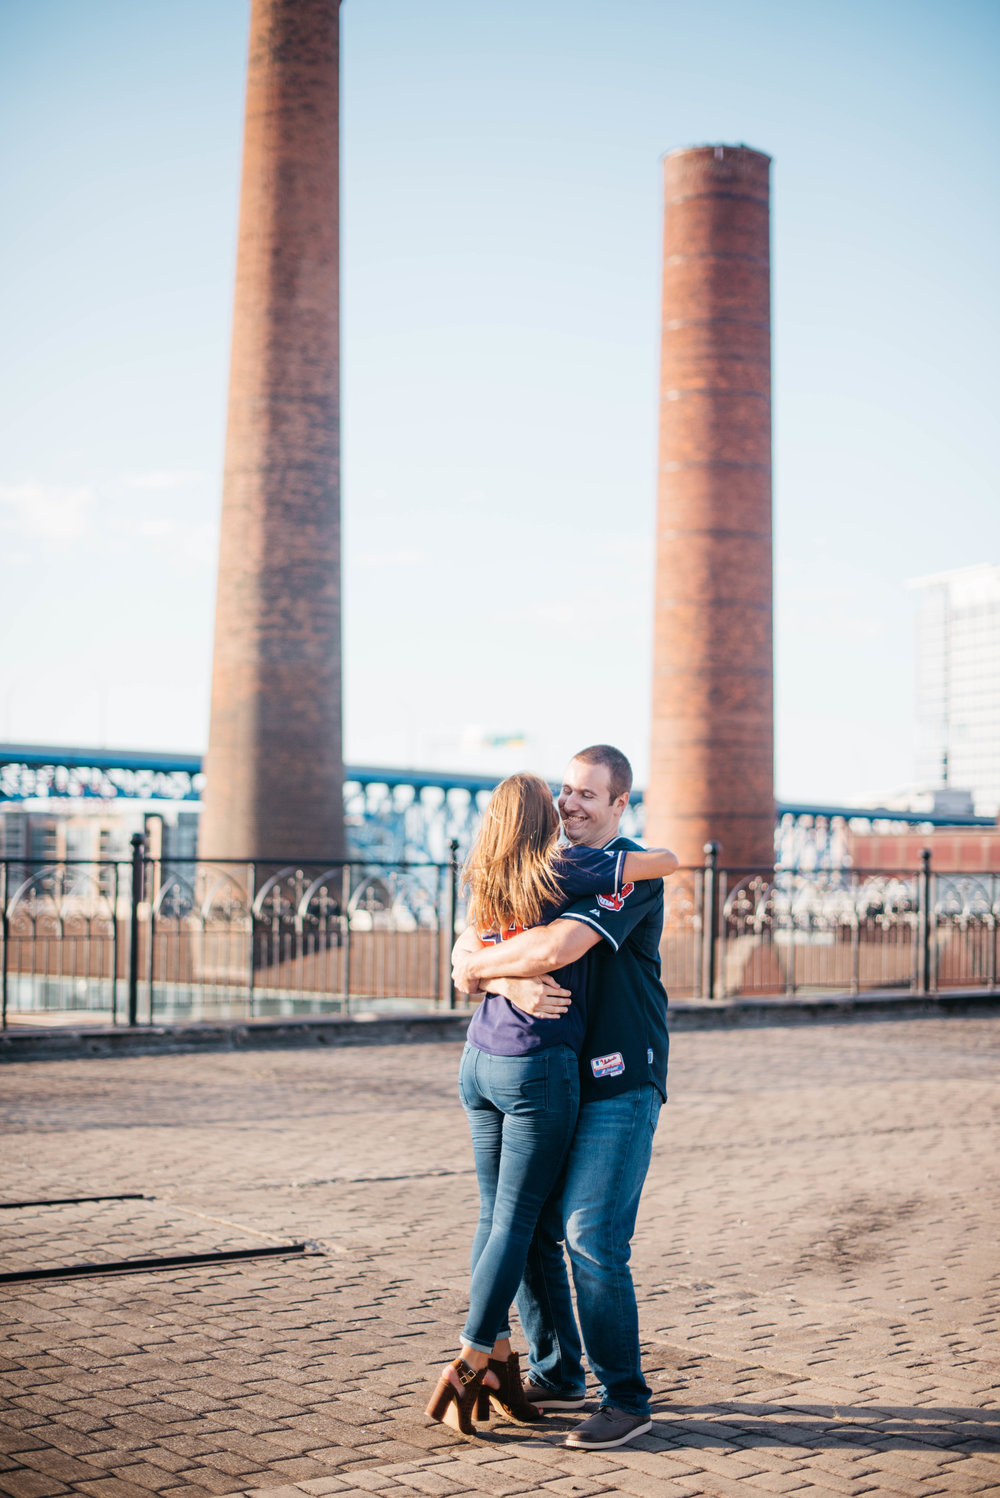 Ohio City and The Flats Cleveland Engagement Session Erika Aileen Photography Midwest and Destination Wedding Photographer